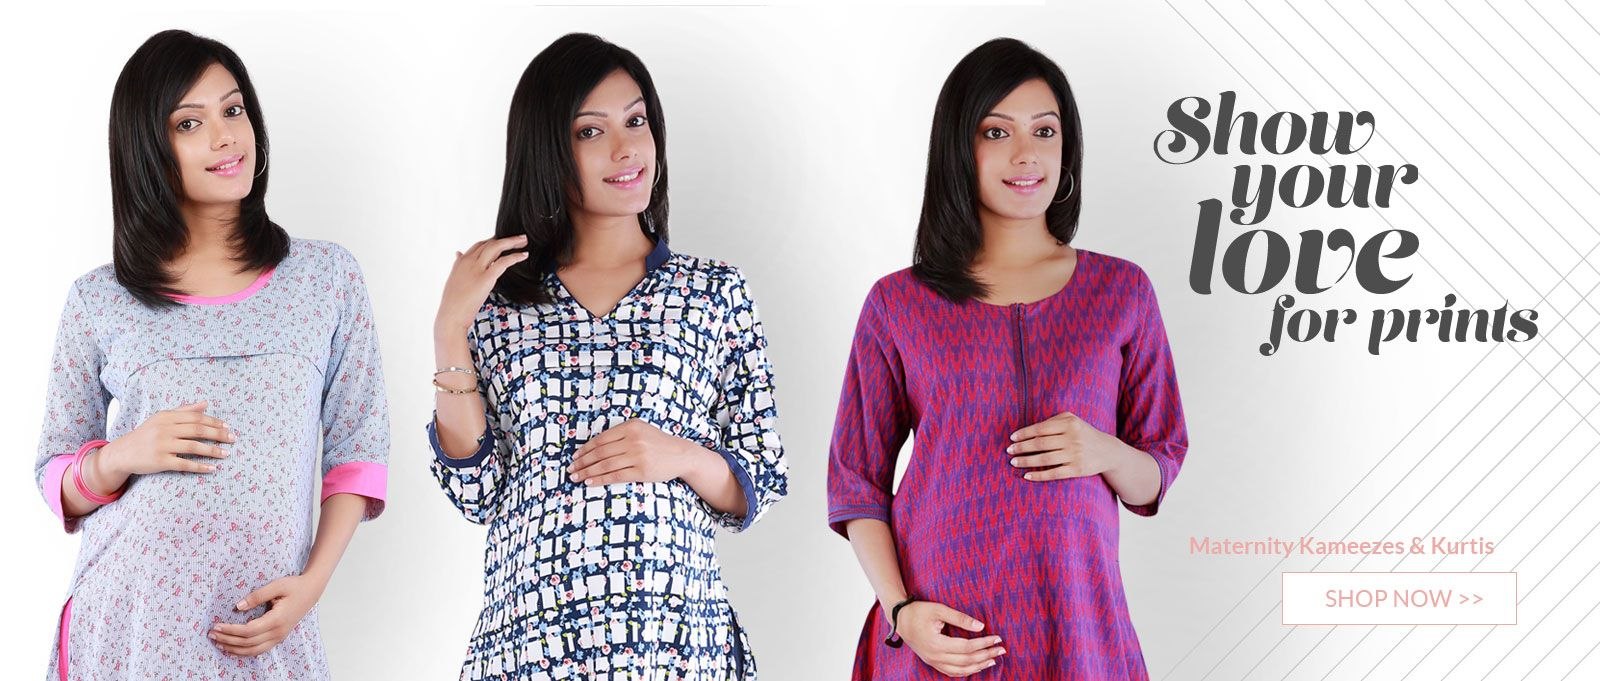 2073c89033c2f Morph Maternity Ethnic Wear With Concealed Nursing Options ...